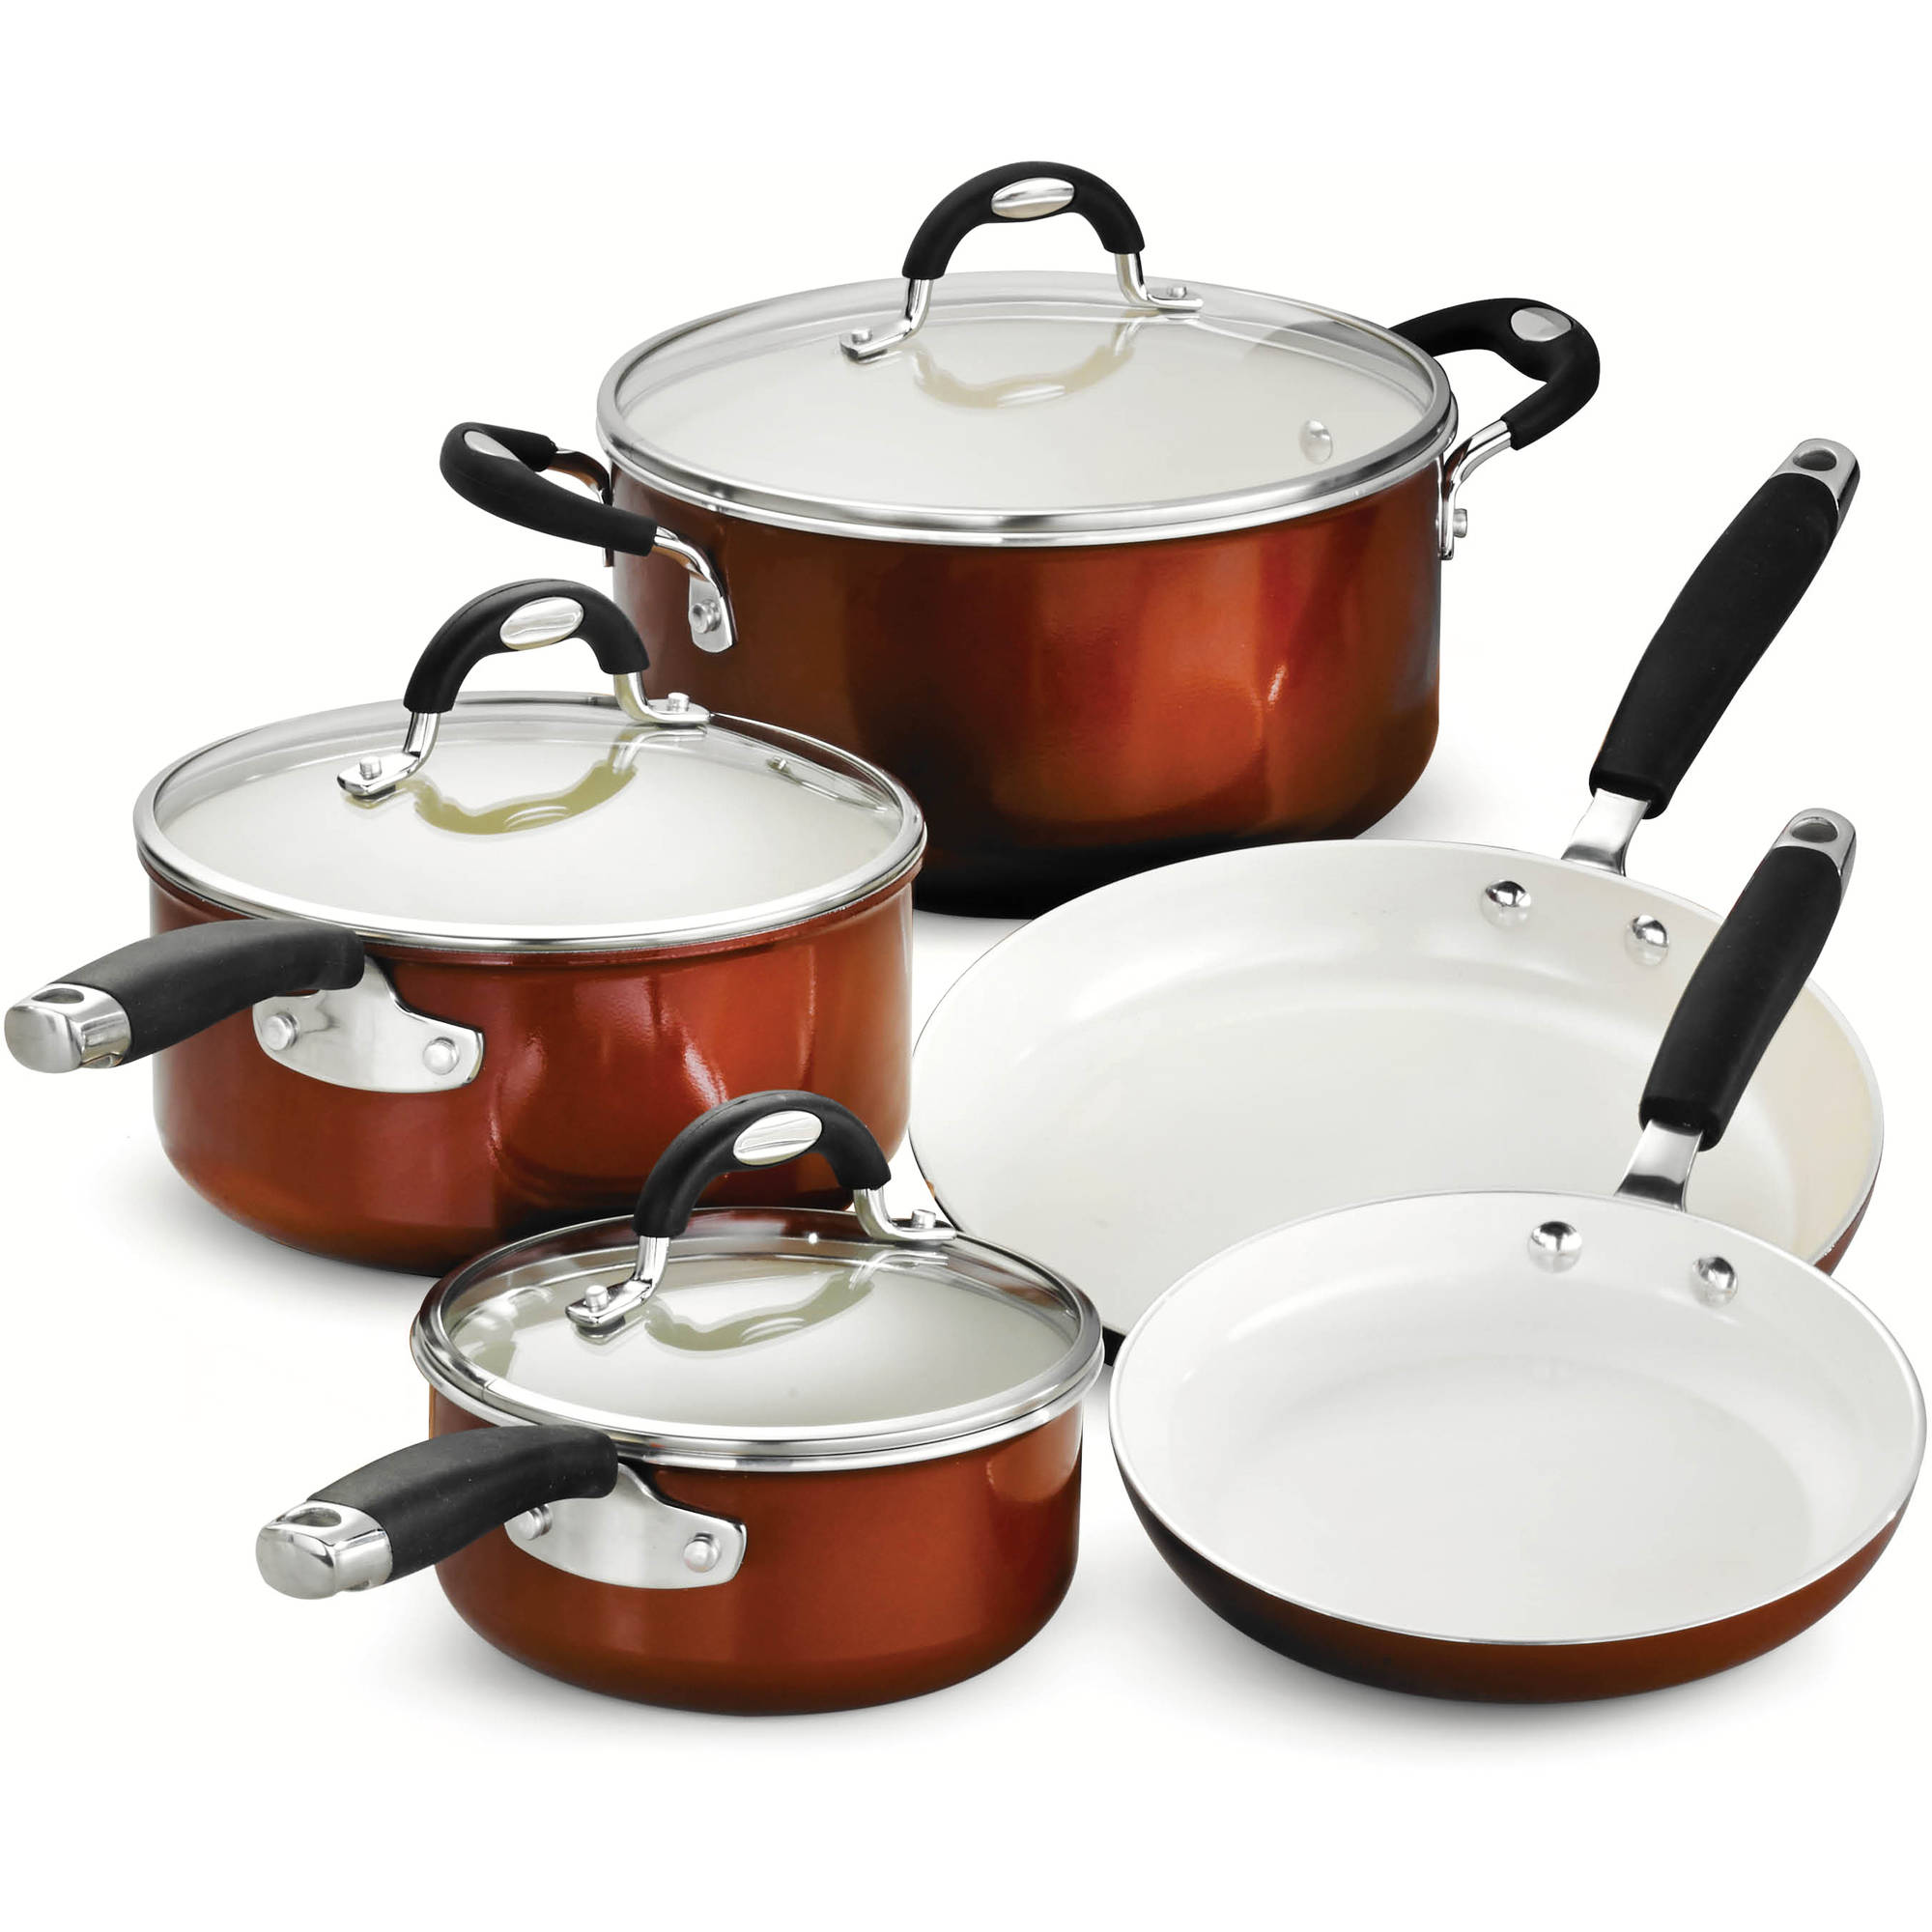 Tramontina Style 8-Piece Cookware Set, Metallic Copper by Tramontina USA Inc.